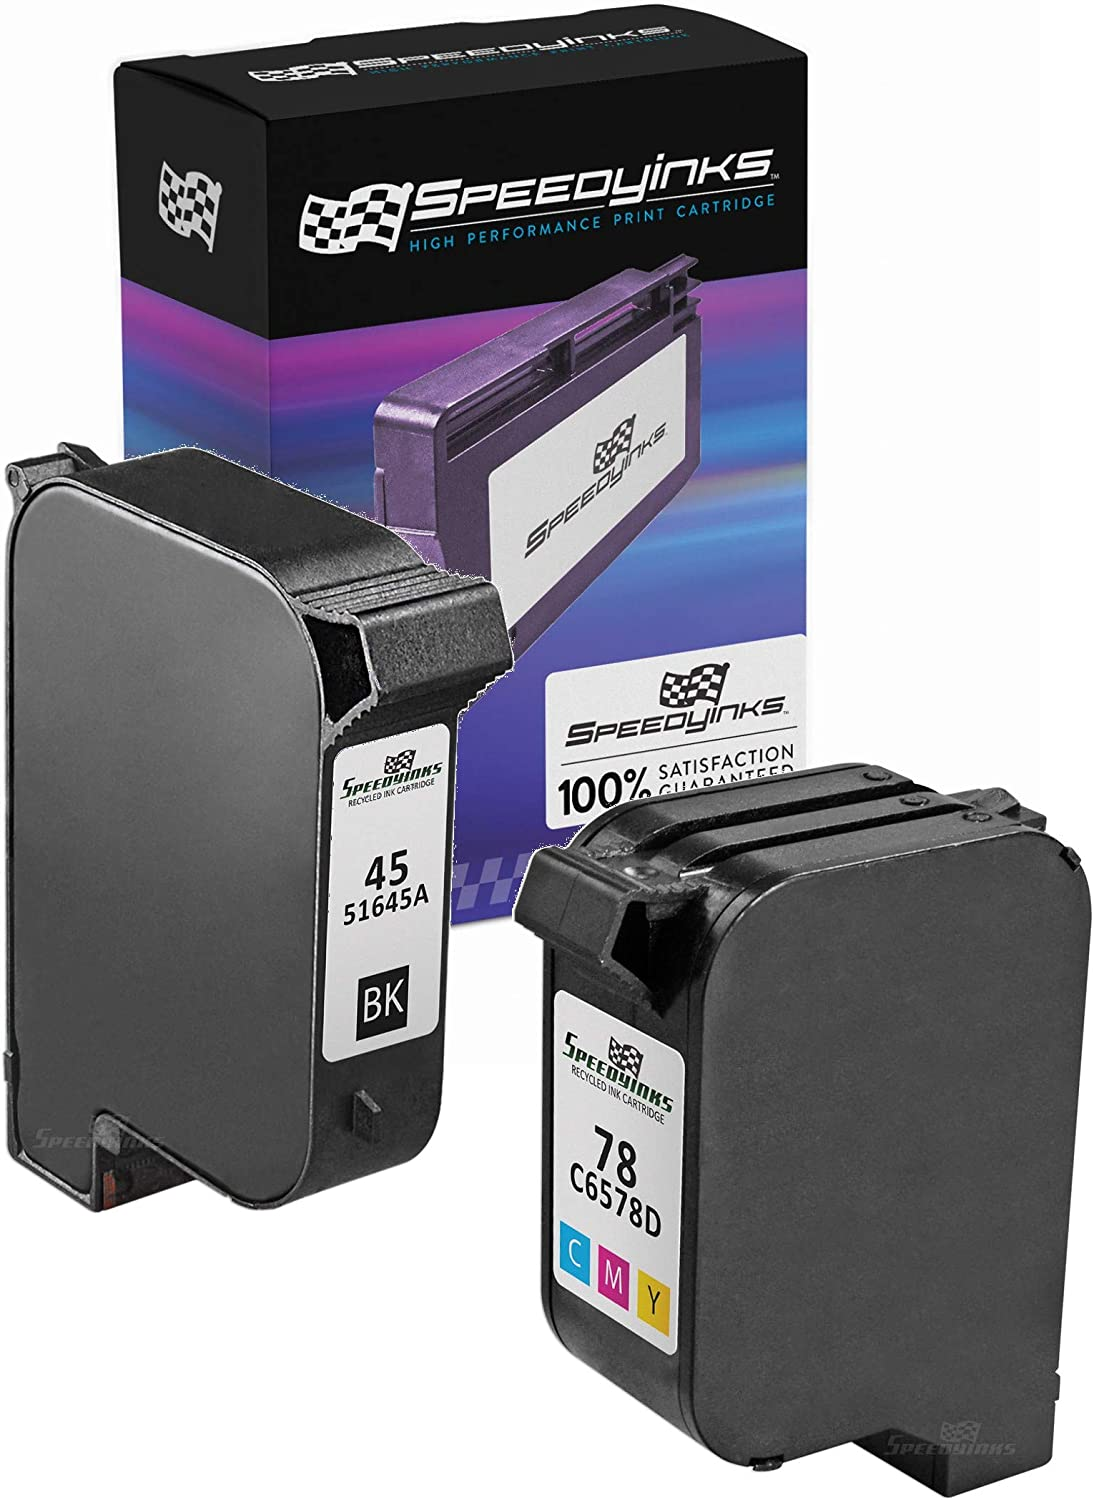 Speedy Inks Remanufactured Ink Cartridge Replacement for HP 45 & HP 78 (1 Black, 1 Color, 2-Pack)